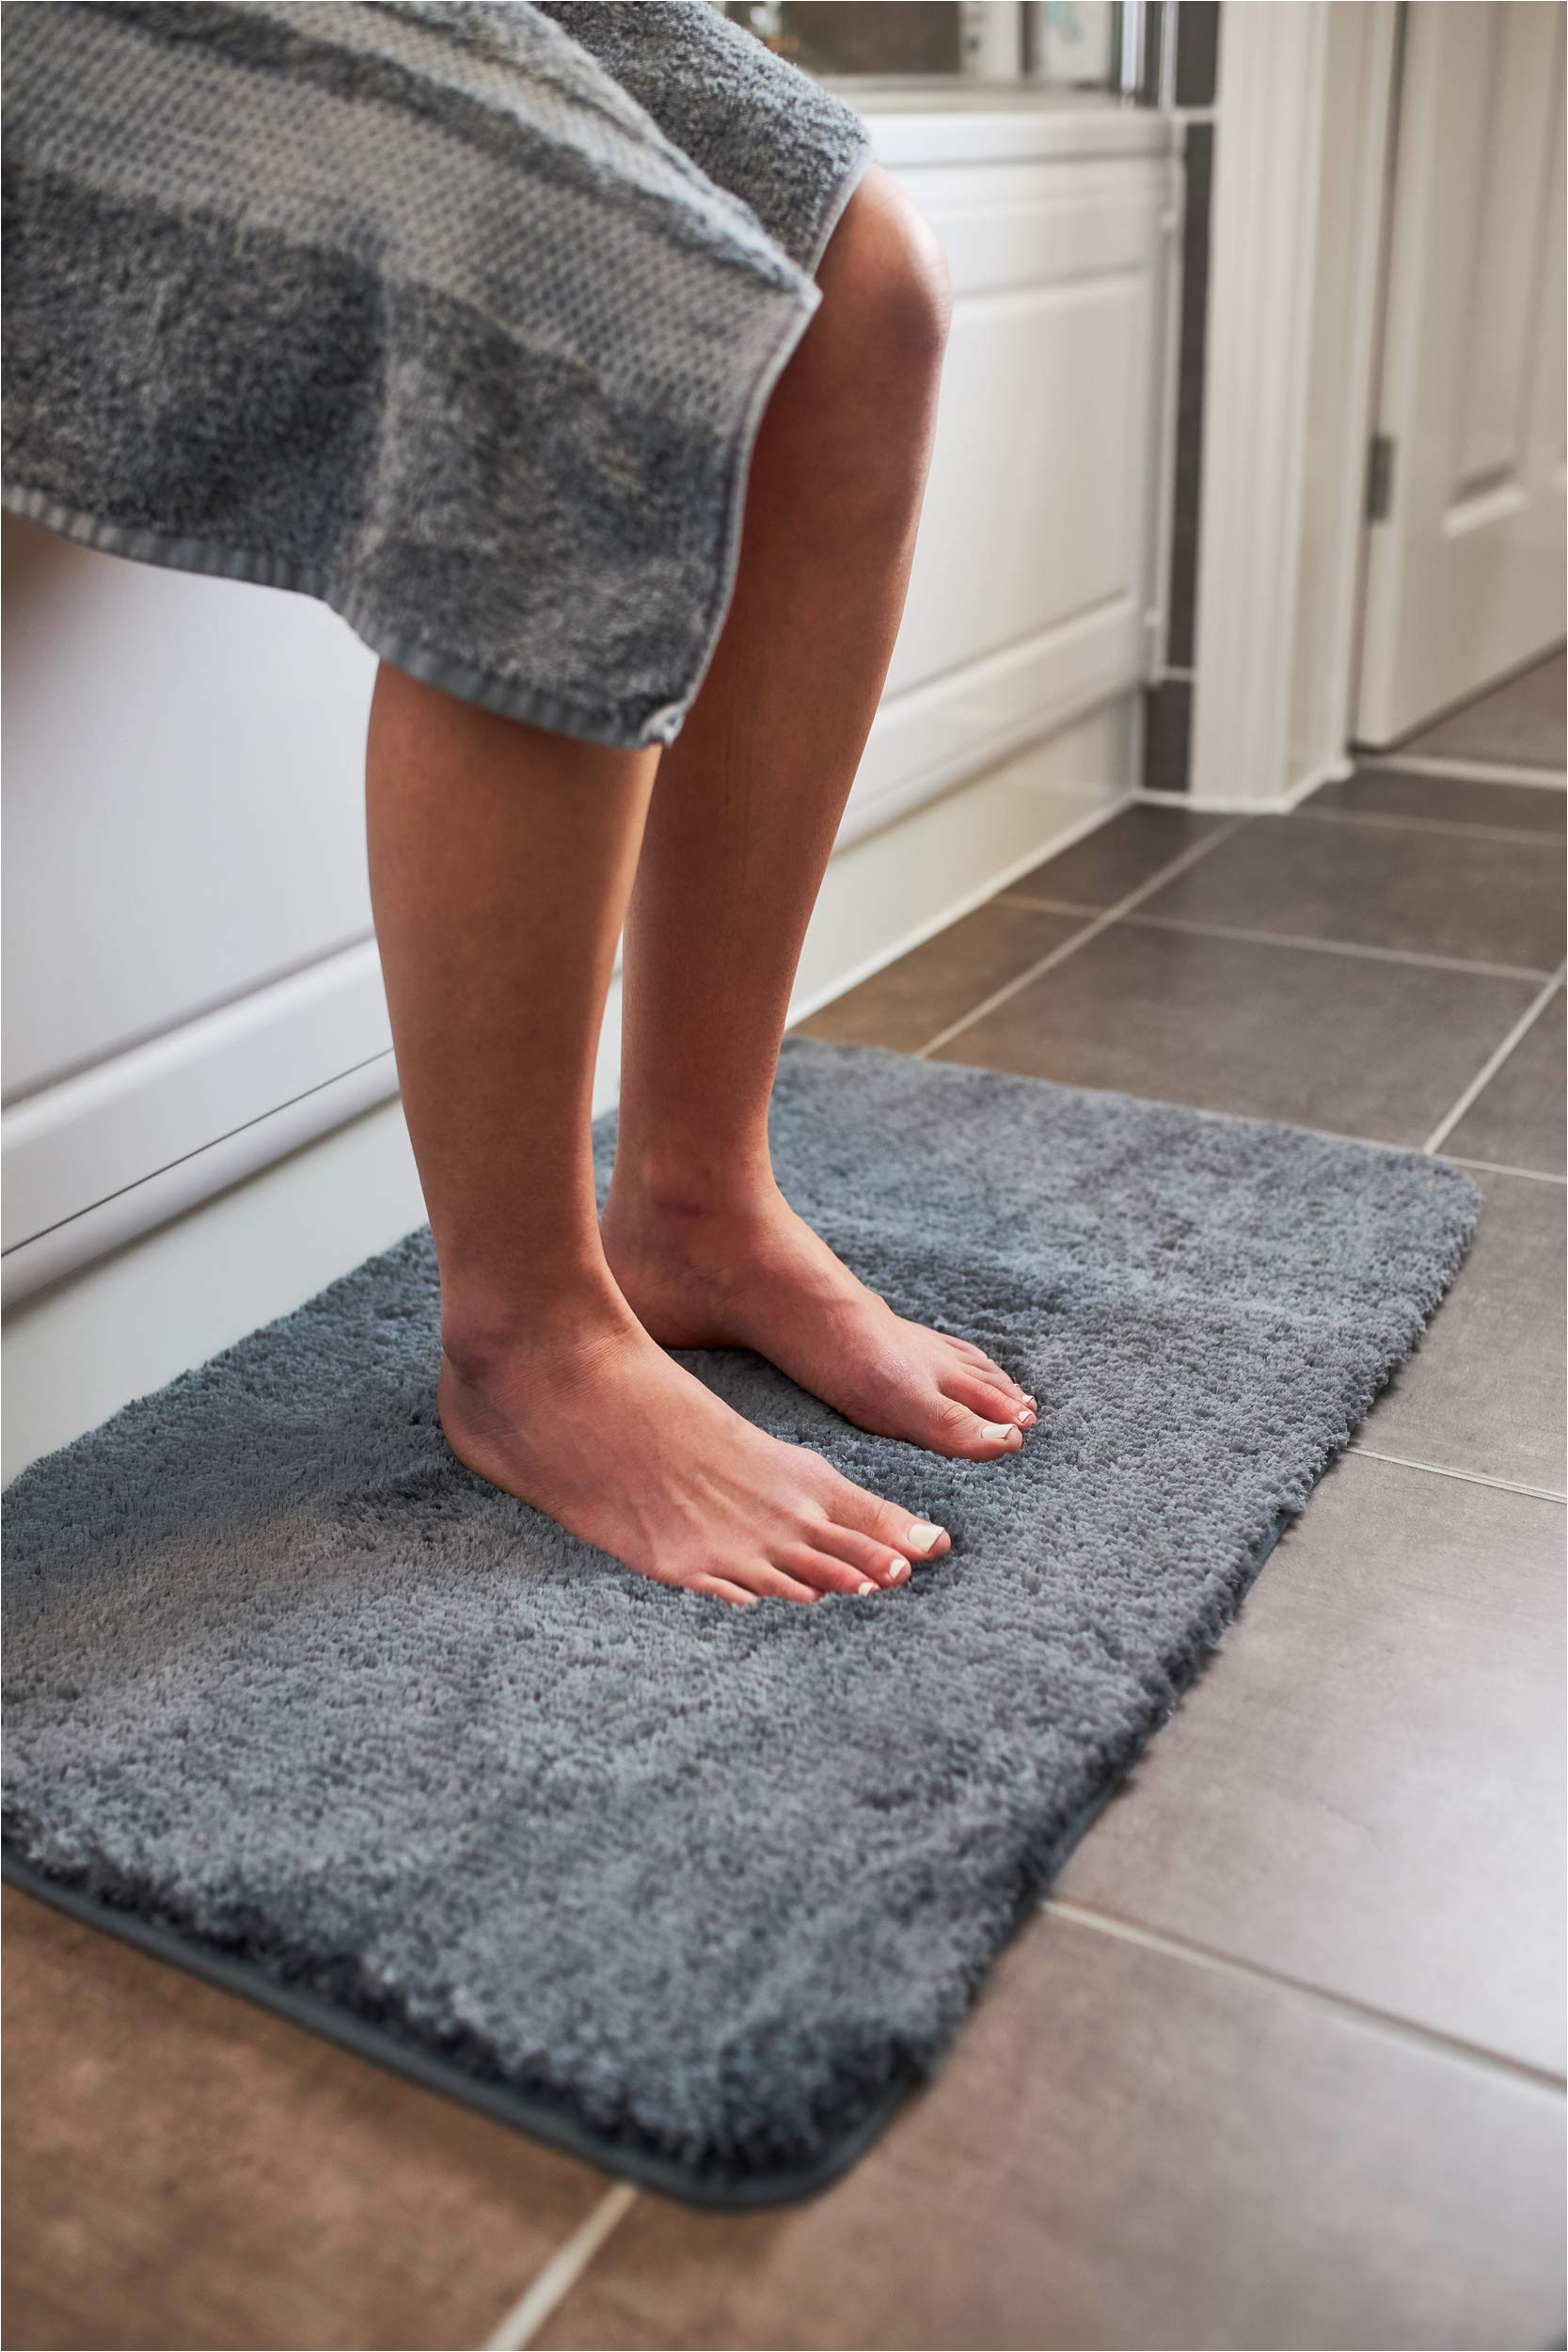 Super soft Bath Rugs Luxury Grey Bath Mat Microfiber Non Slip Bath Rug with Super soft Absorbent Dry Fast Design for Bath and Shower